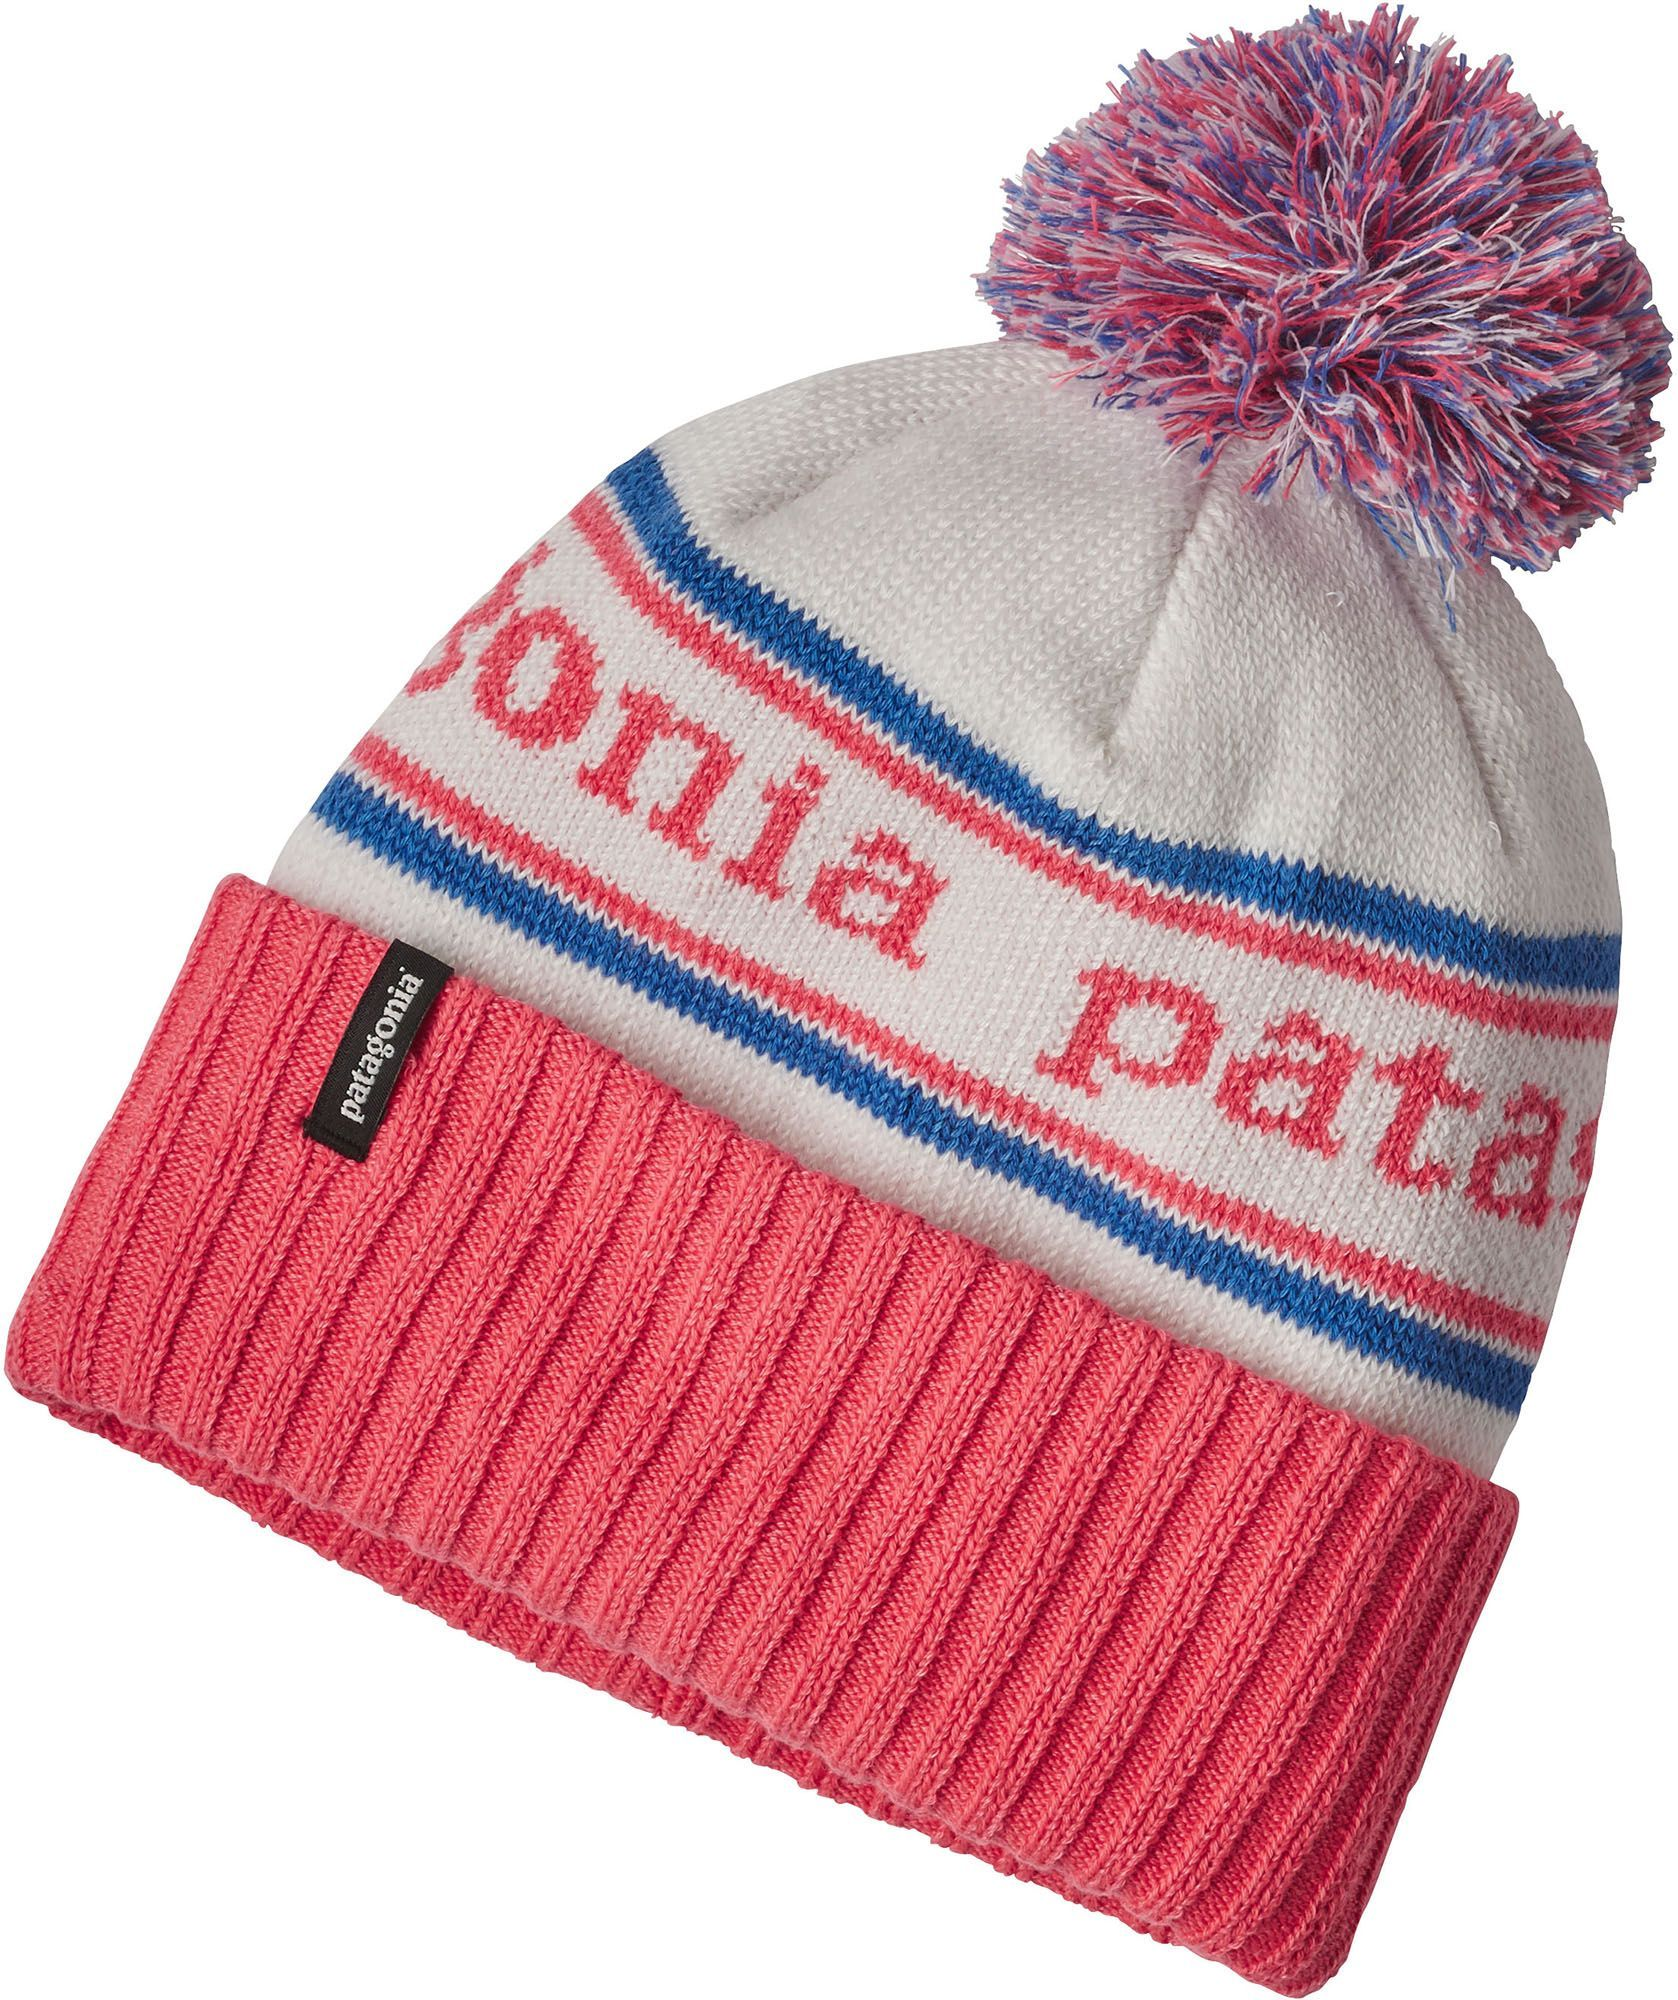 c326ff24dd920 Patagonia Youth Powder Town Beanie